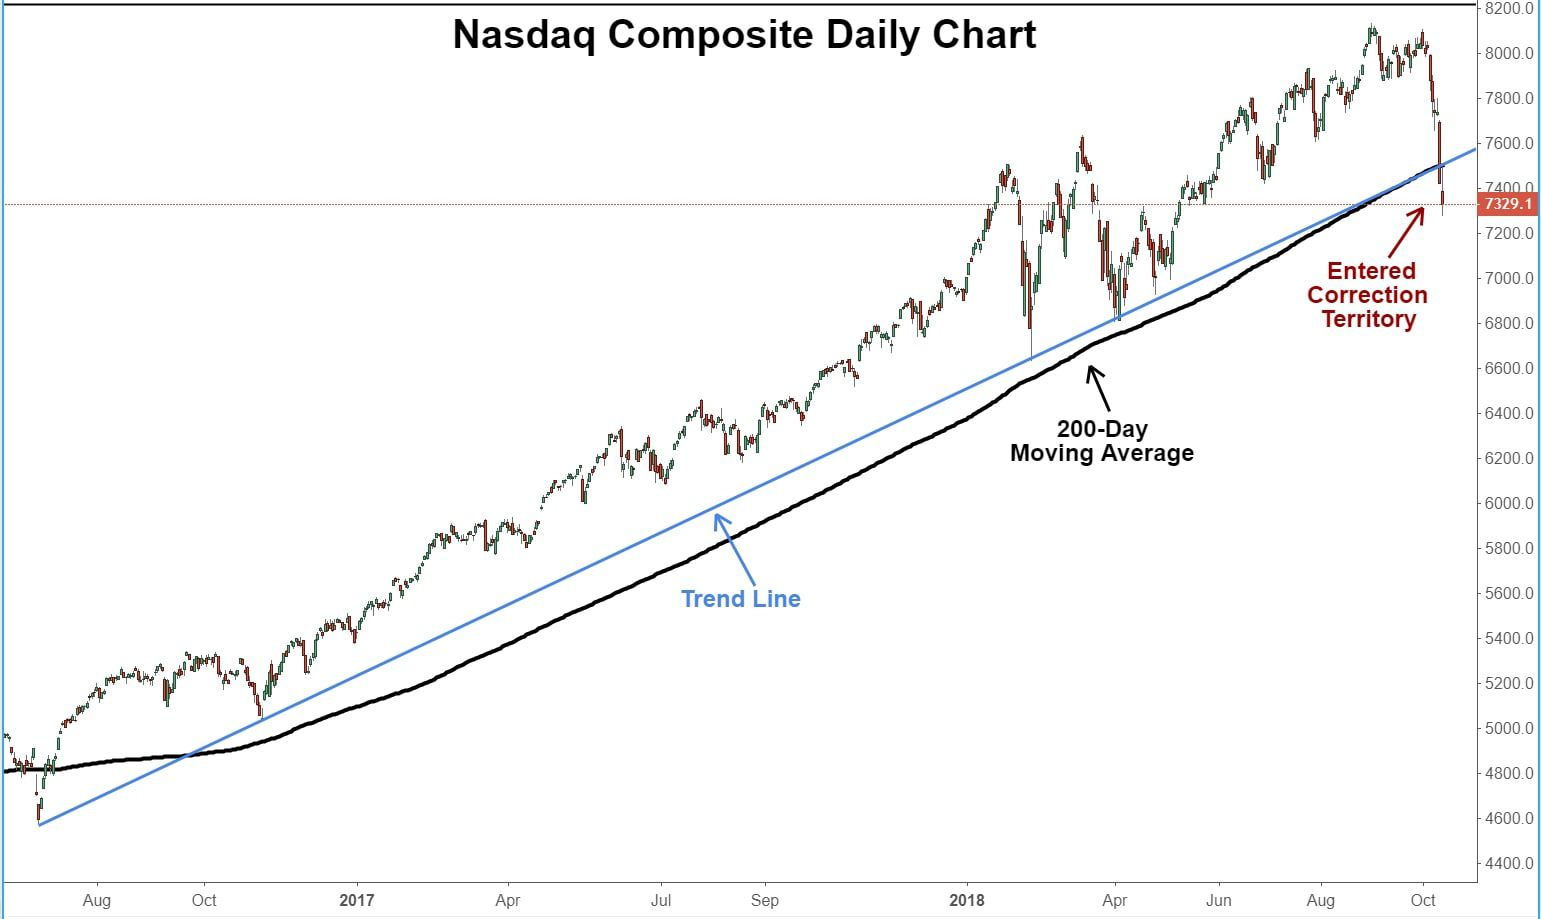 Daily Technical Chart Showing The Performance Of Nasdaq Composite Index